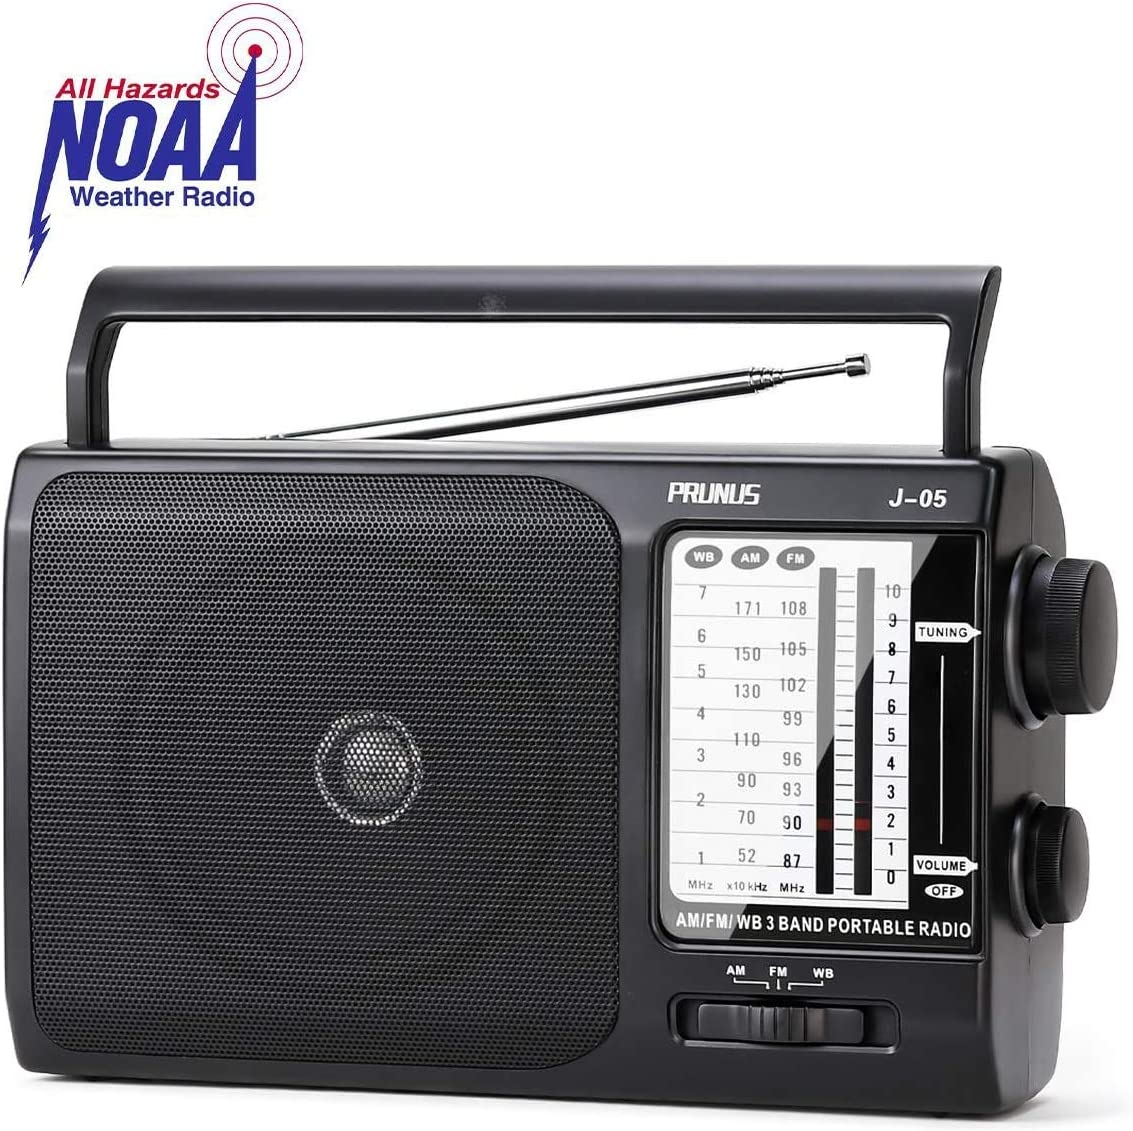 [Upgraded] PRUNUS J-05 Transistor Radio Battery Operated AM FM Radio with Excellent Reception, Portable Weather NOAA Radio Powered by 3X D Cell Batteries or AC Power for Household and Outdoor: Home Audio & Theater